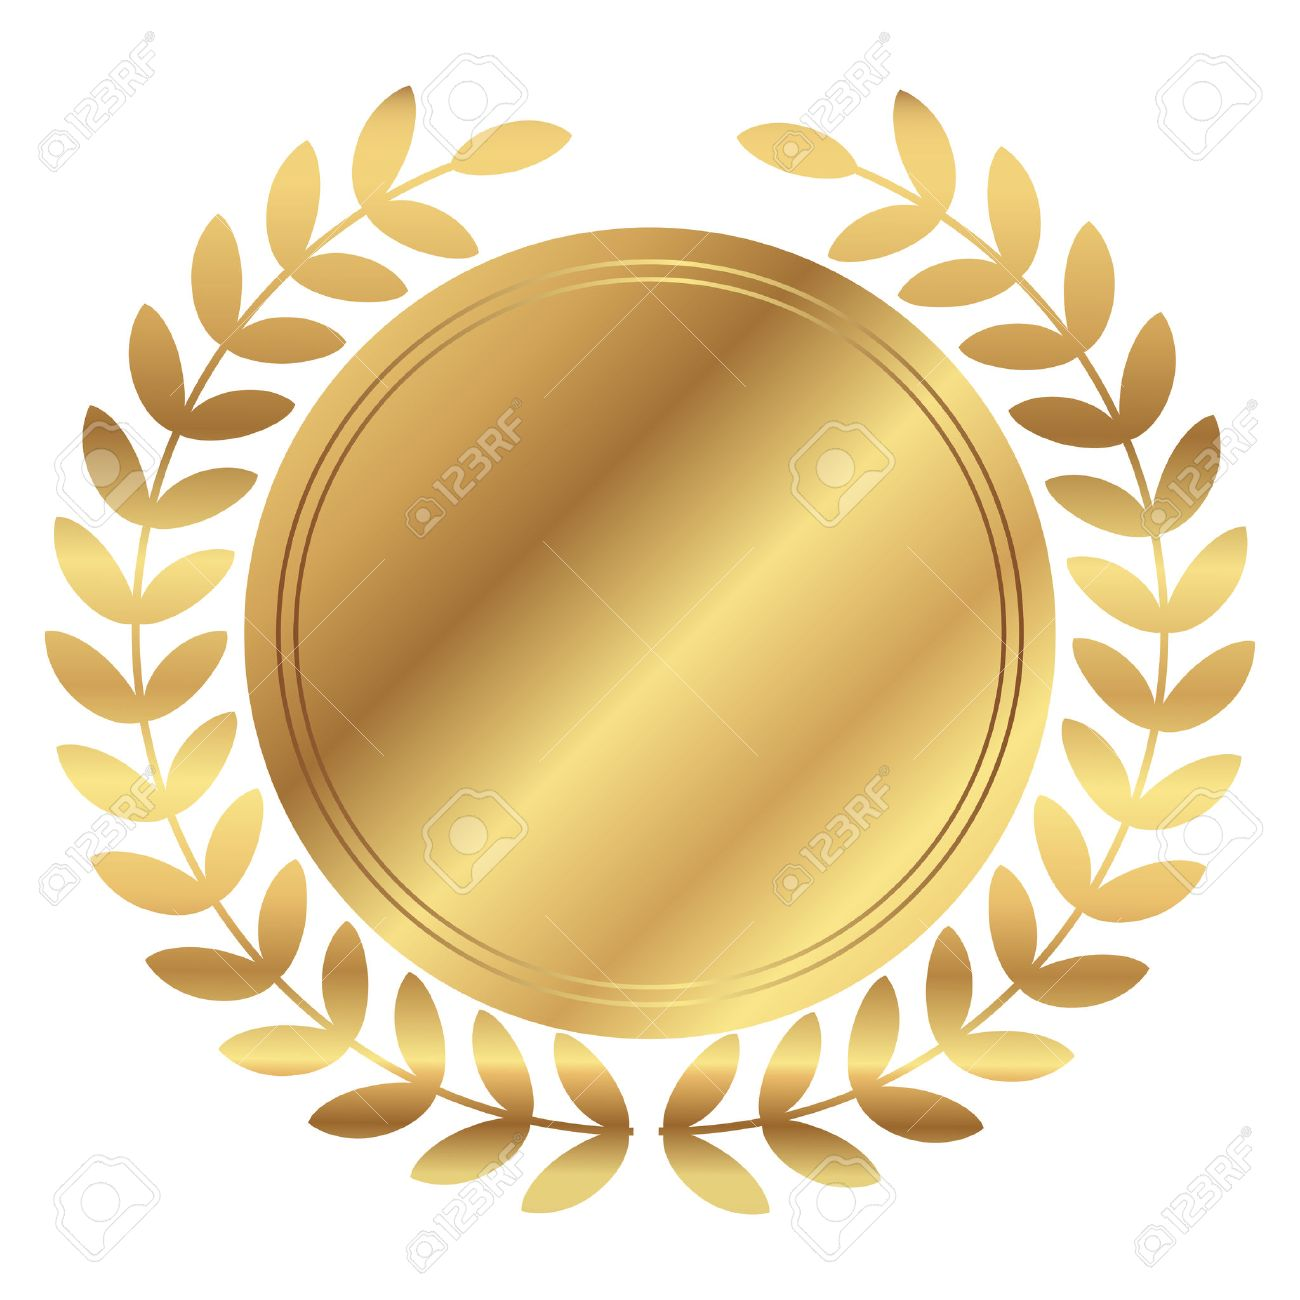 vector illustration of gold medal and laurels royalty free cliparts rh 123rf com royalty vector graphics royalty vector pattern